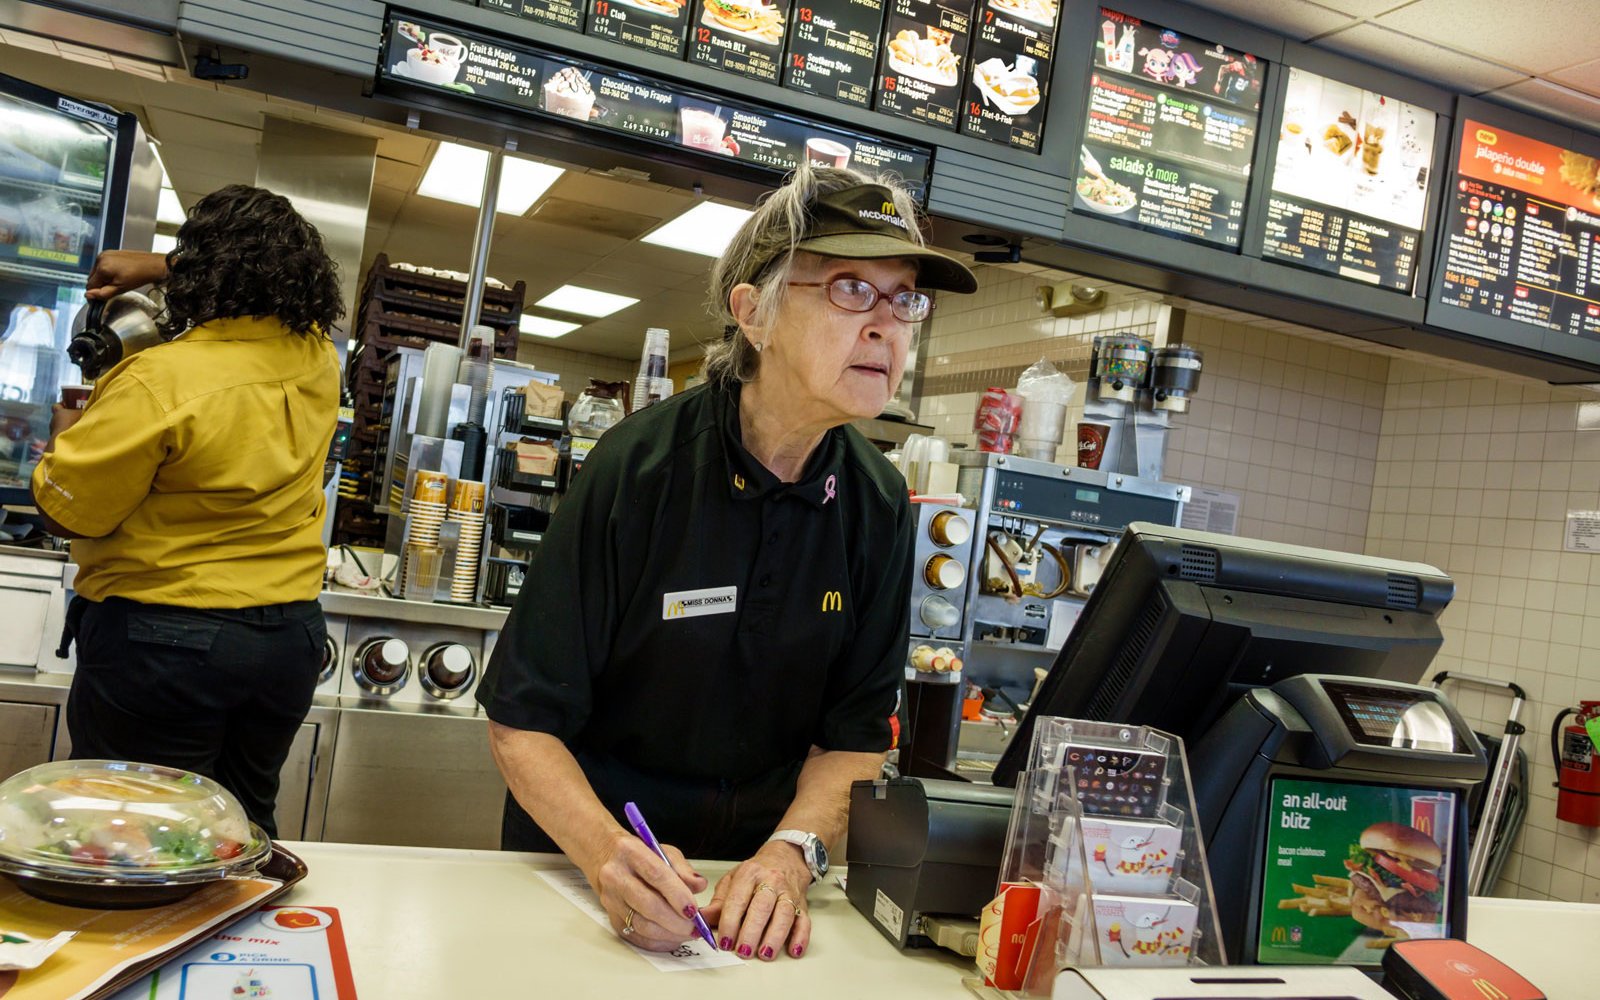 McDonald's Is Teaming up With AARP to Hire Older Workers